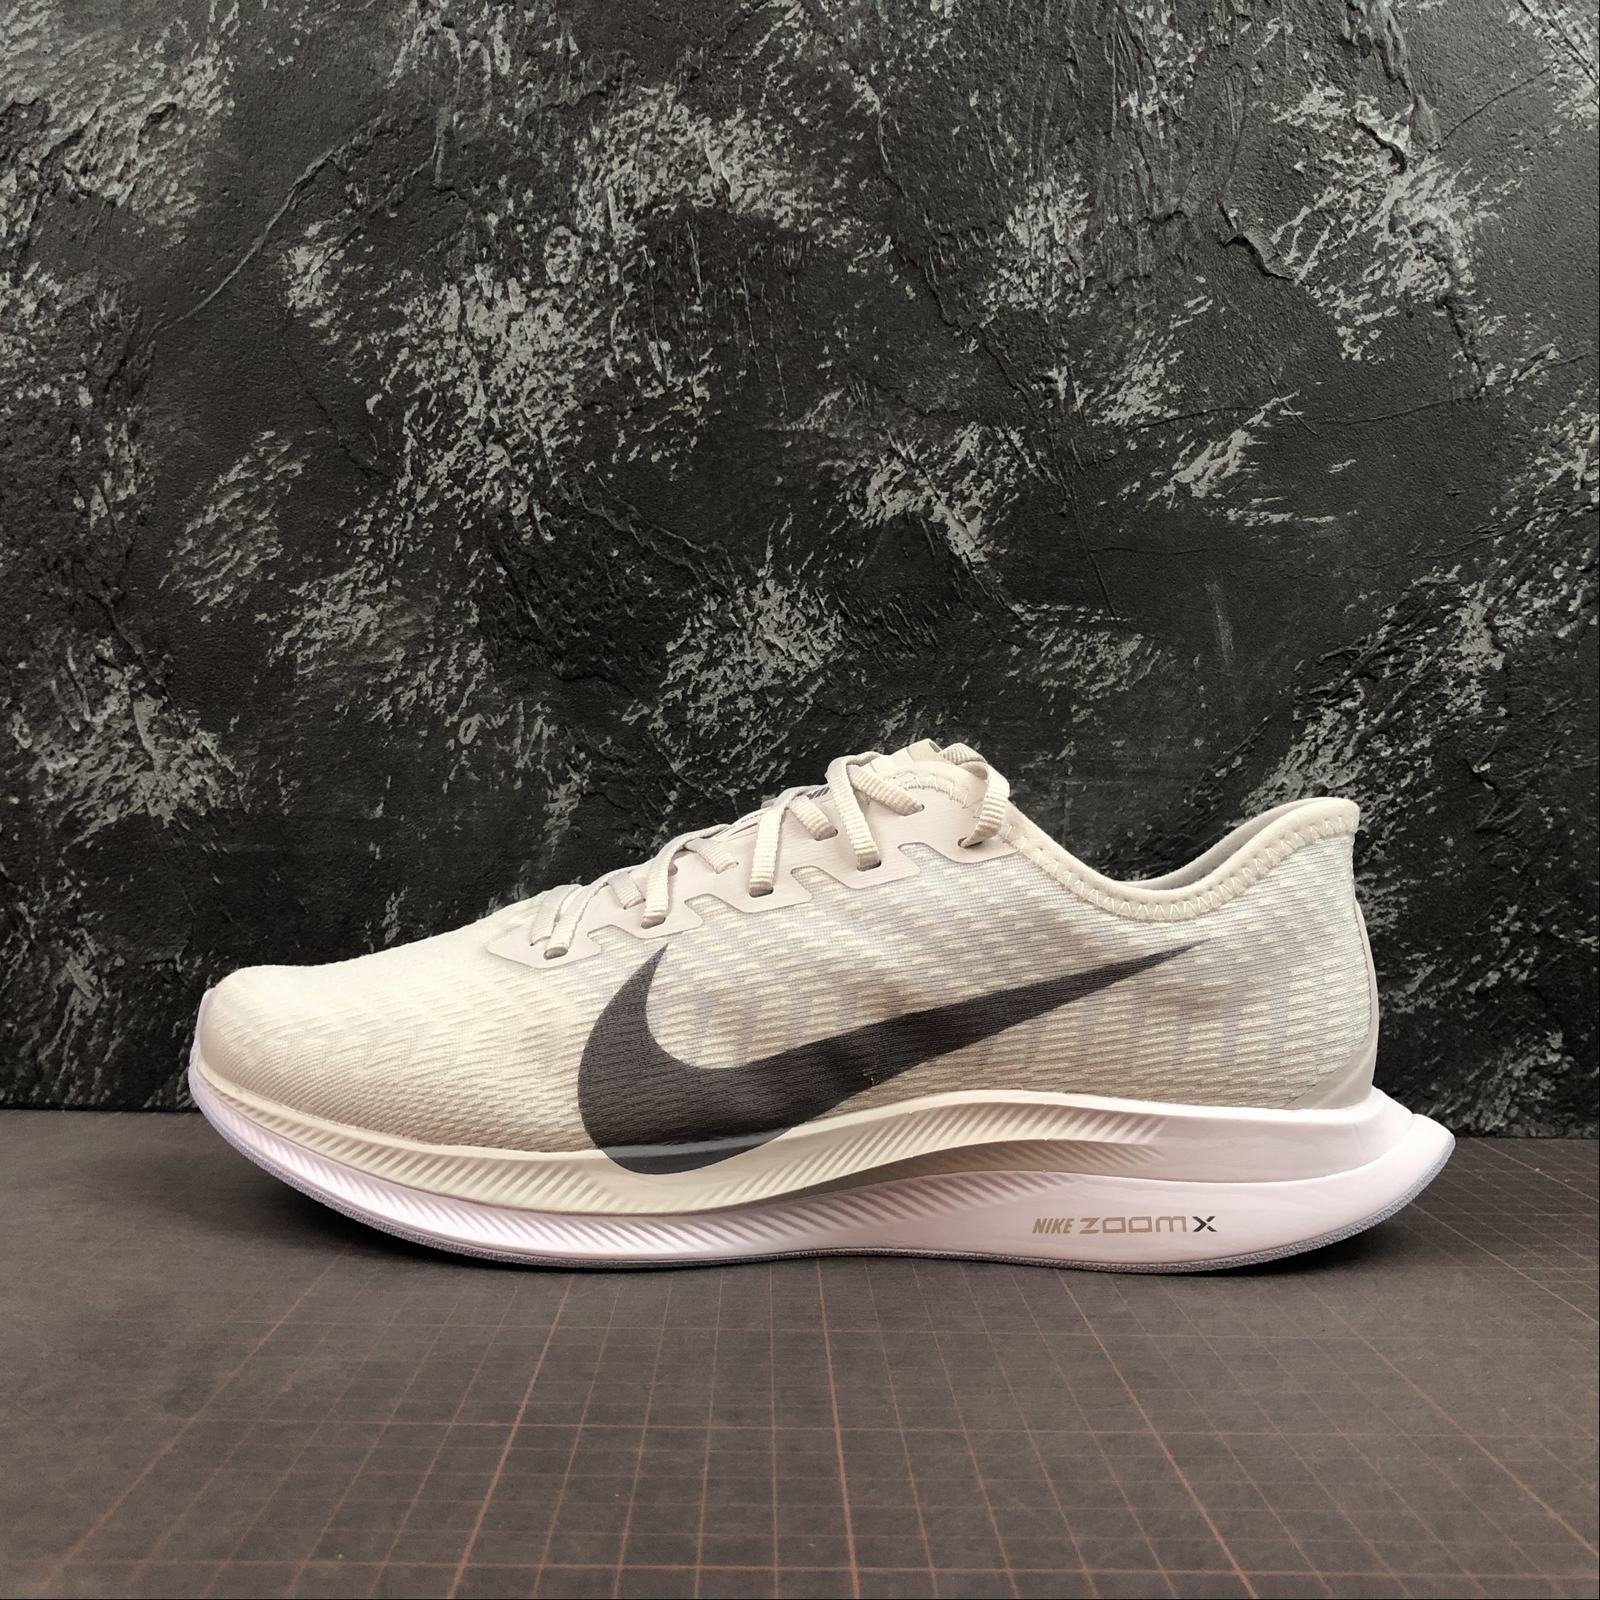 Мужские кроссовки Nike Zoom Pegasus Turbo 2 Men White,Grey